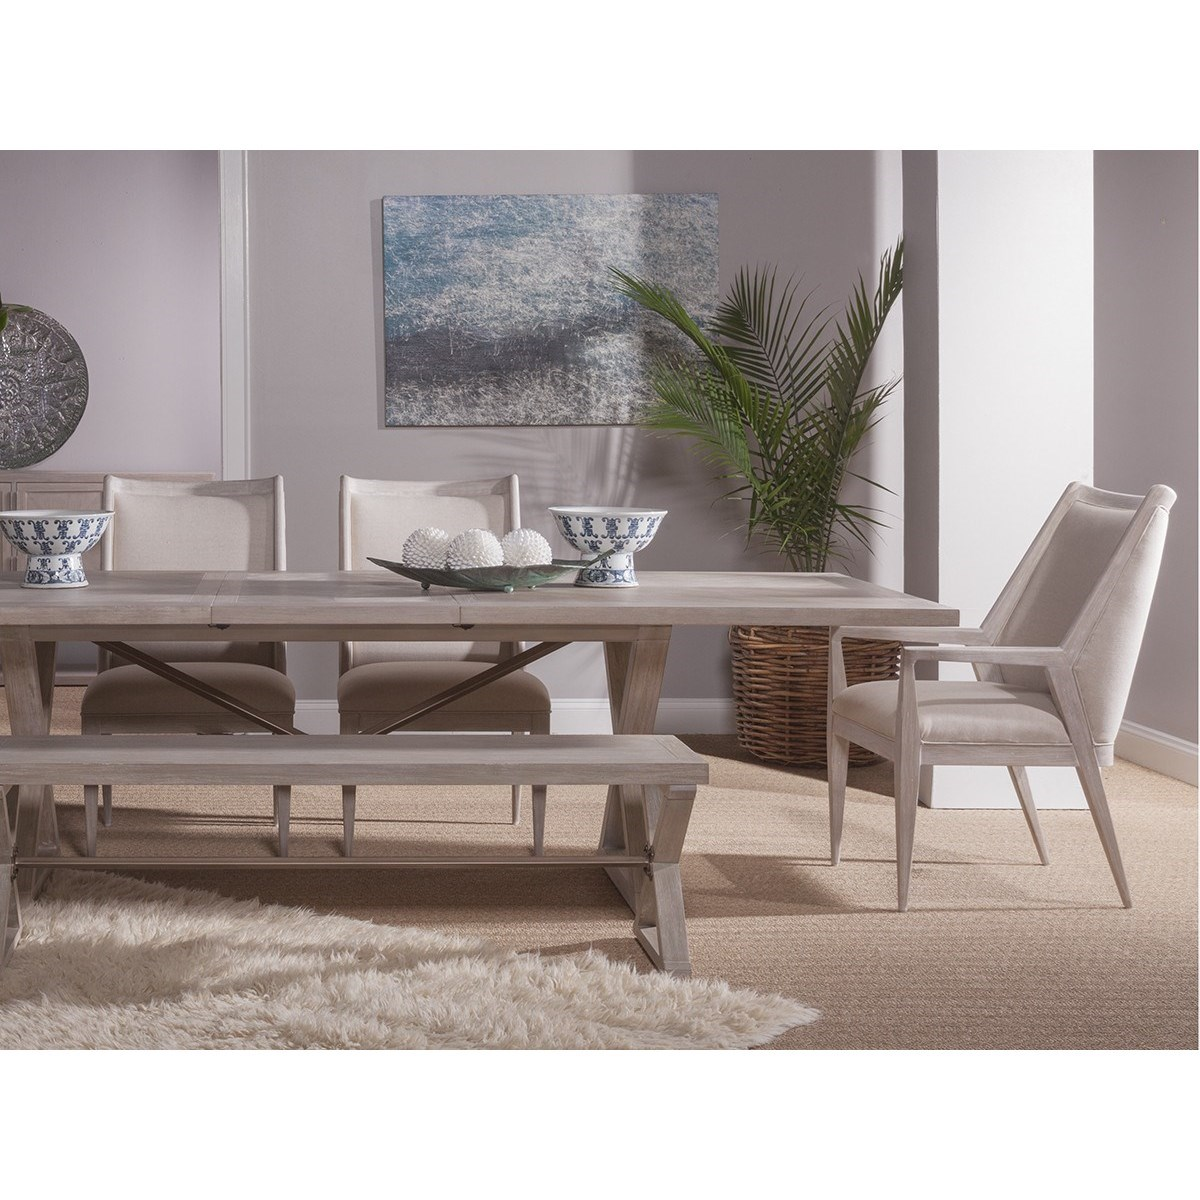 Artistica Cohesion 2003 836 40 Ringo Dining Bench With